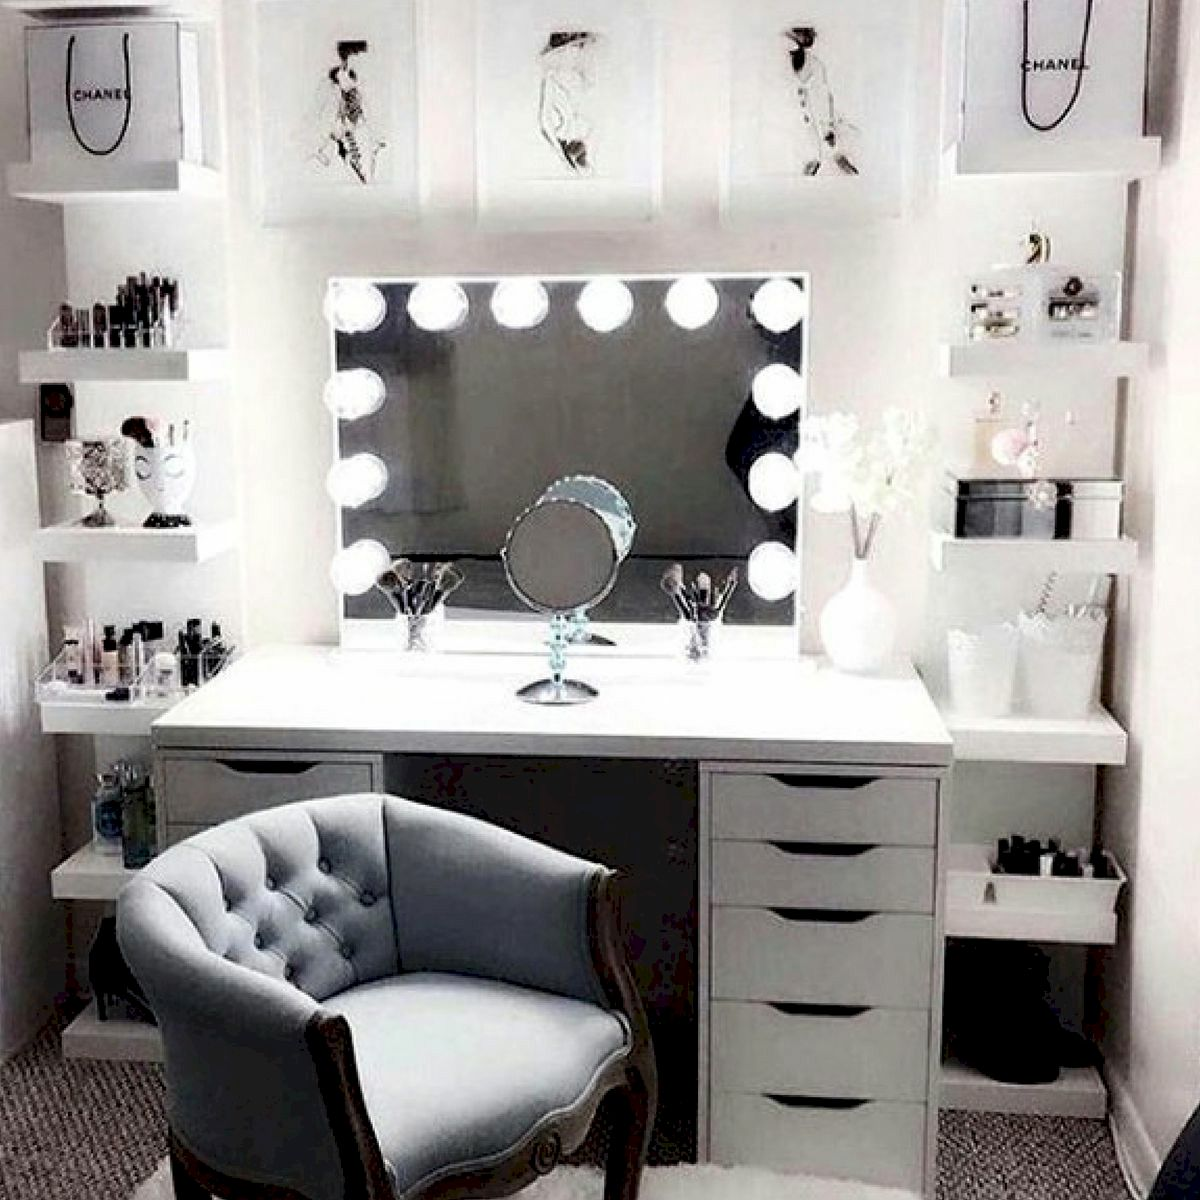 40 Beautiful Make Up Room Ideas in Your Bedroom (29)